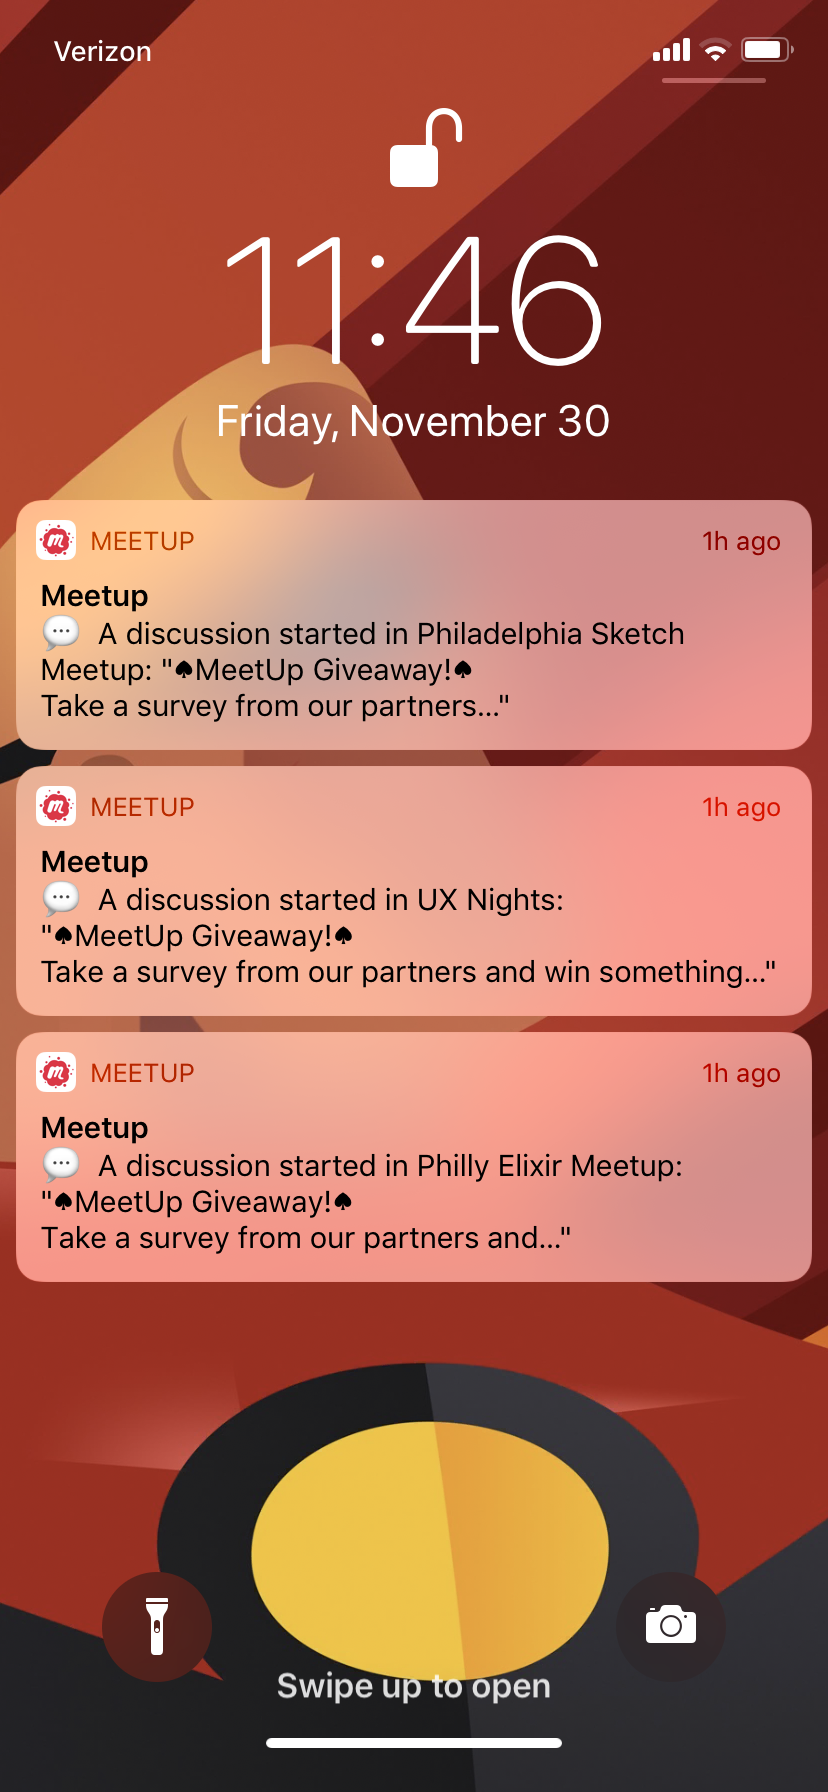 Push Notifications with survey link.